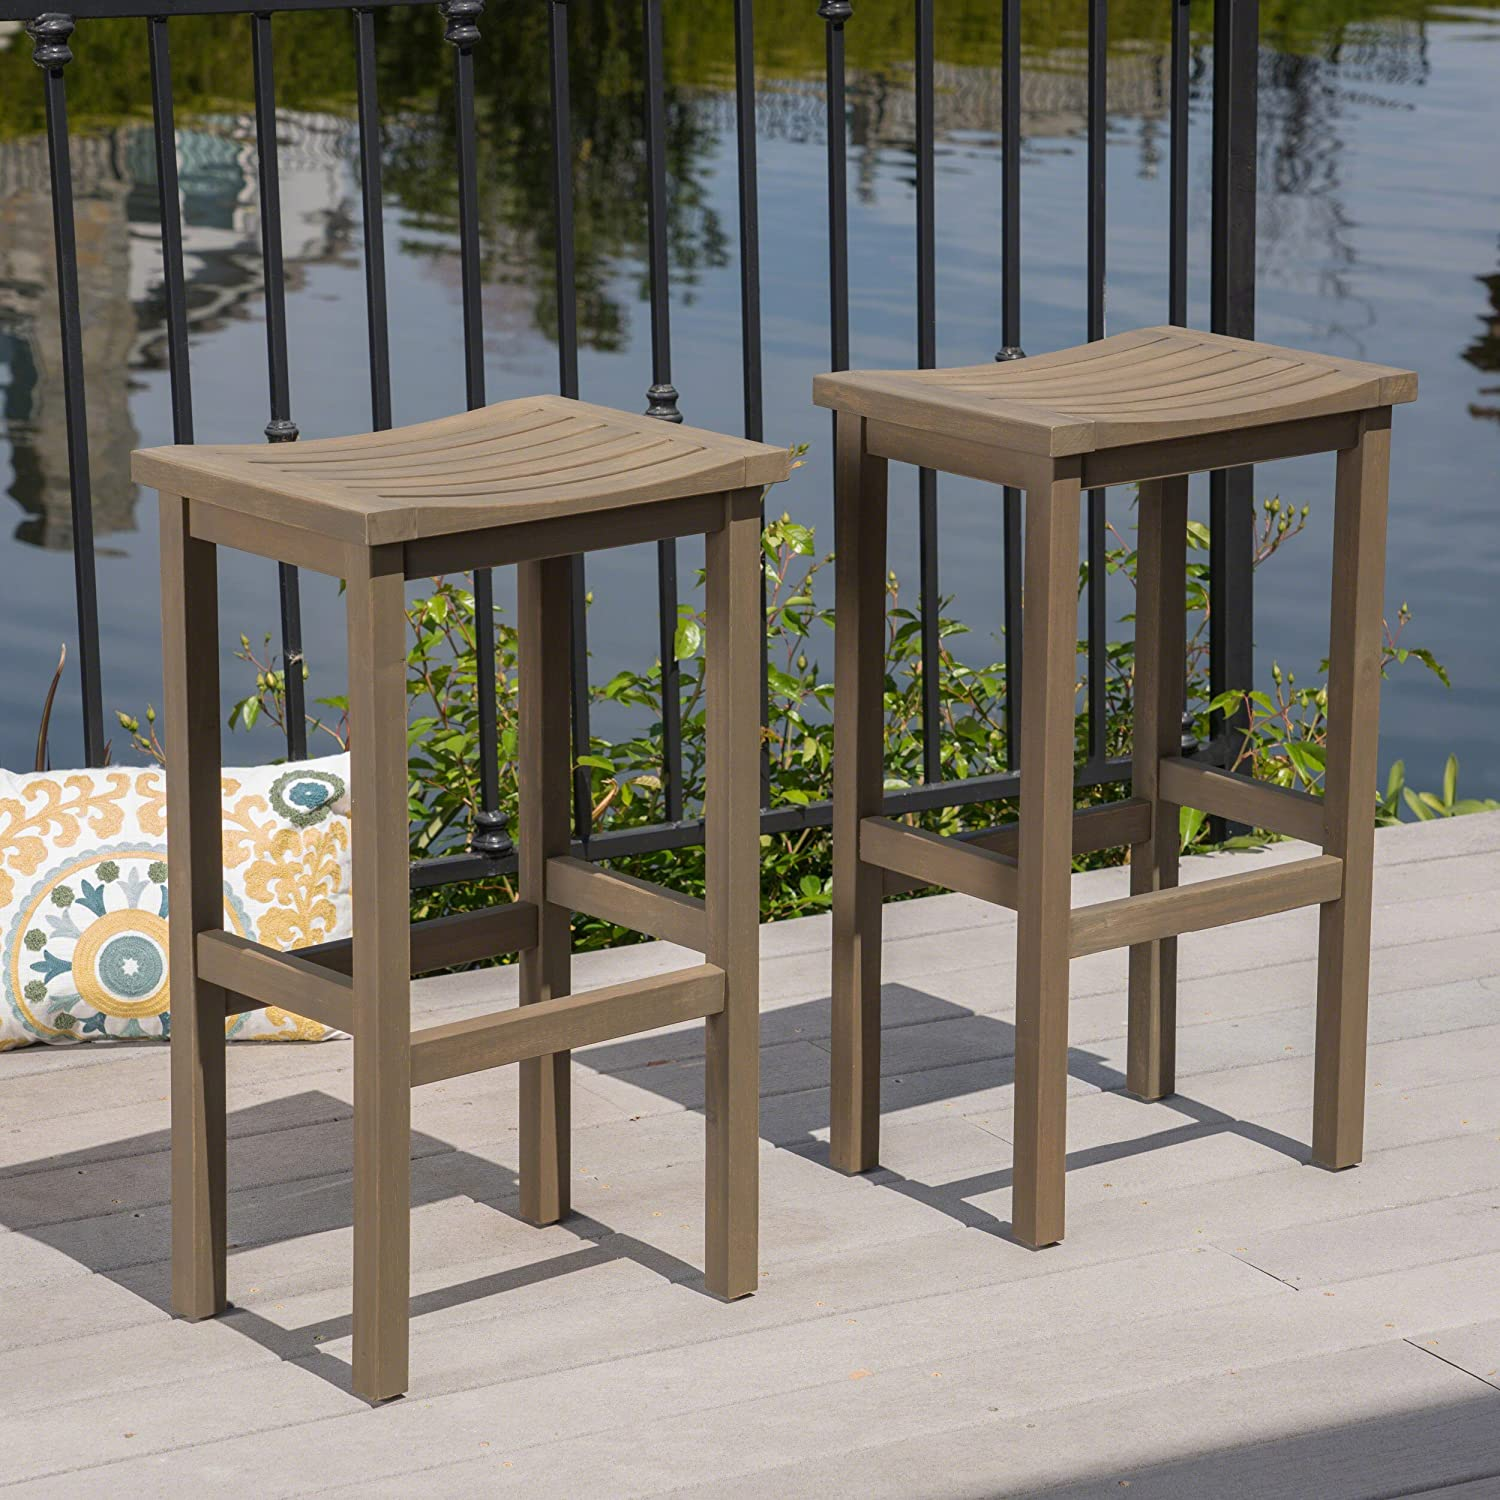 Christopher Knight Home 304143 Caribbean Outdoor 30 Acacia Wood Barstools Set of 2 , Grey